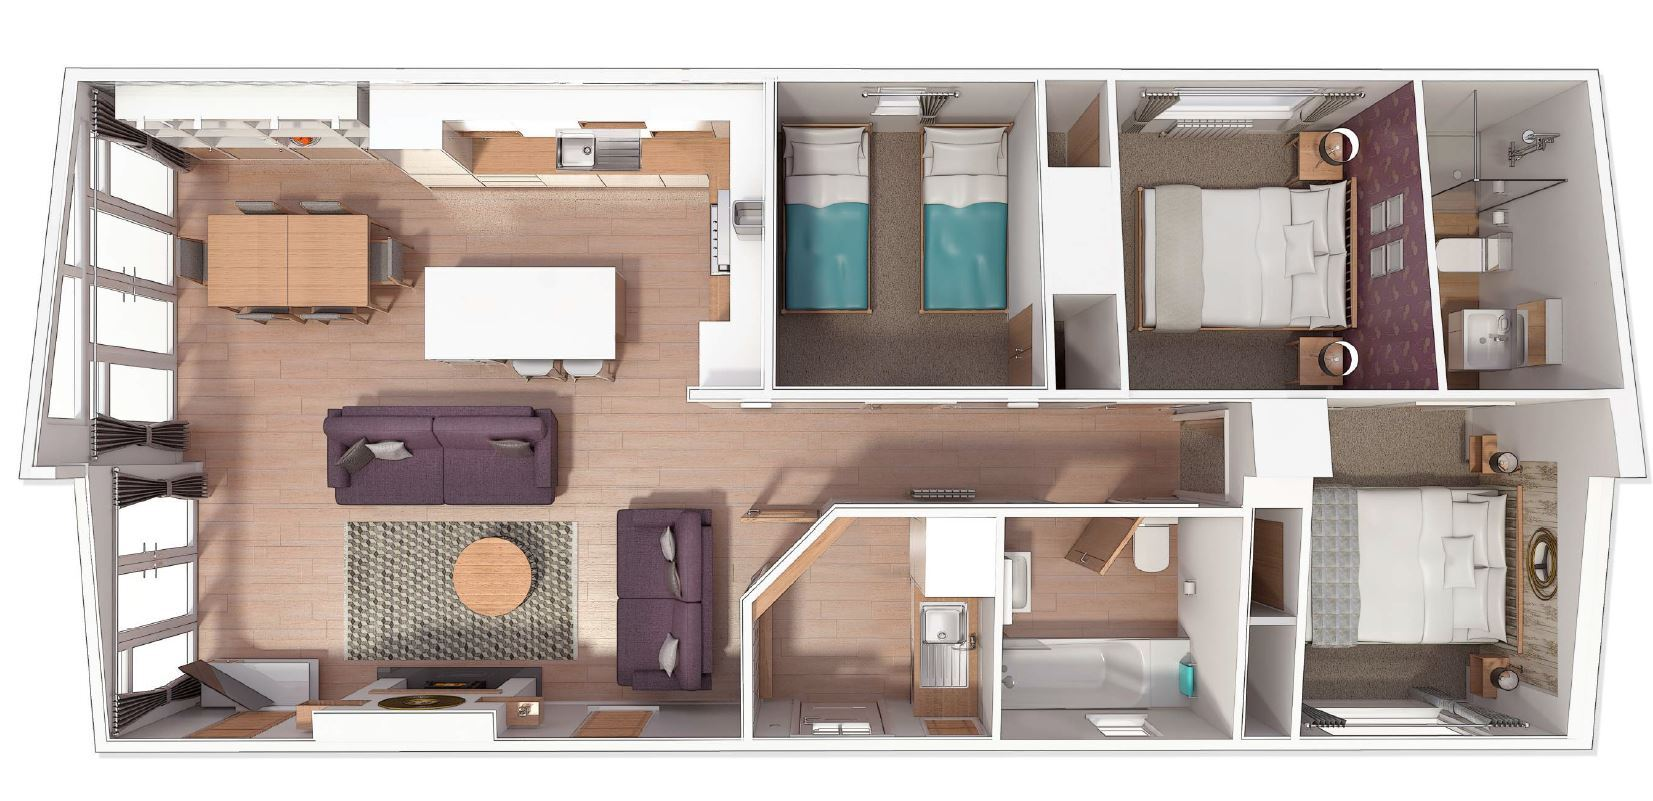 Illustrated is a 45' x 20' 3 bed floor plan. You can make changes to the plan to suit your requirements.